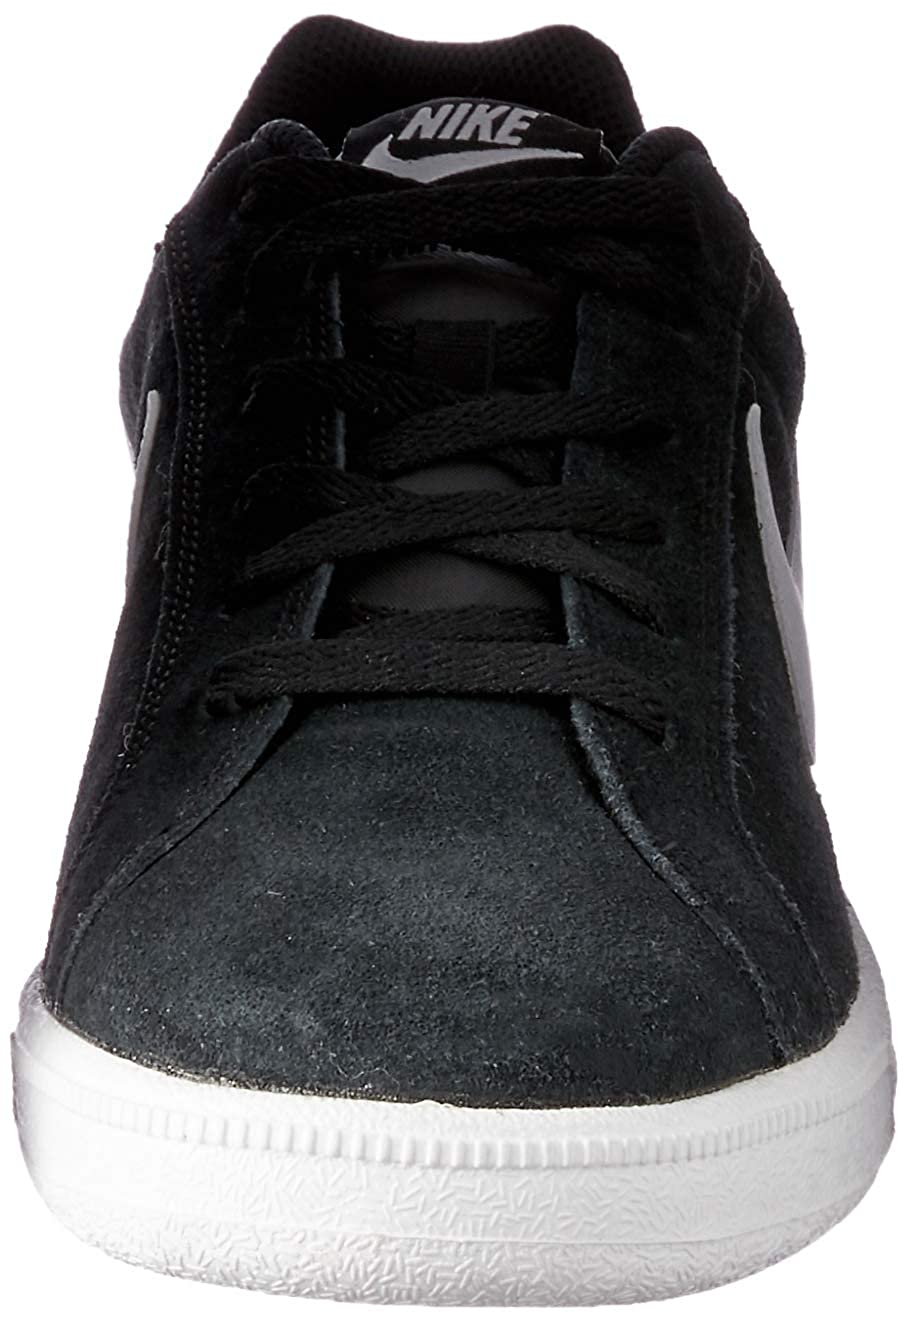 Court Sneakers Suede Men's Royale Nike mNv80wn